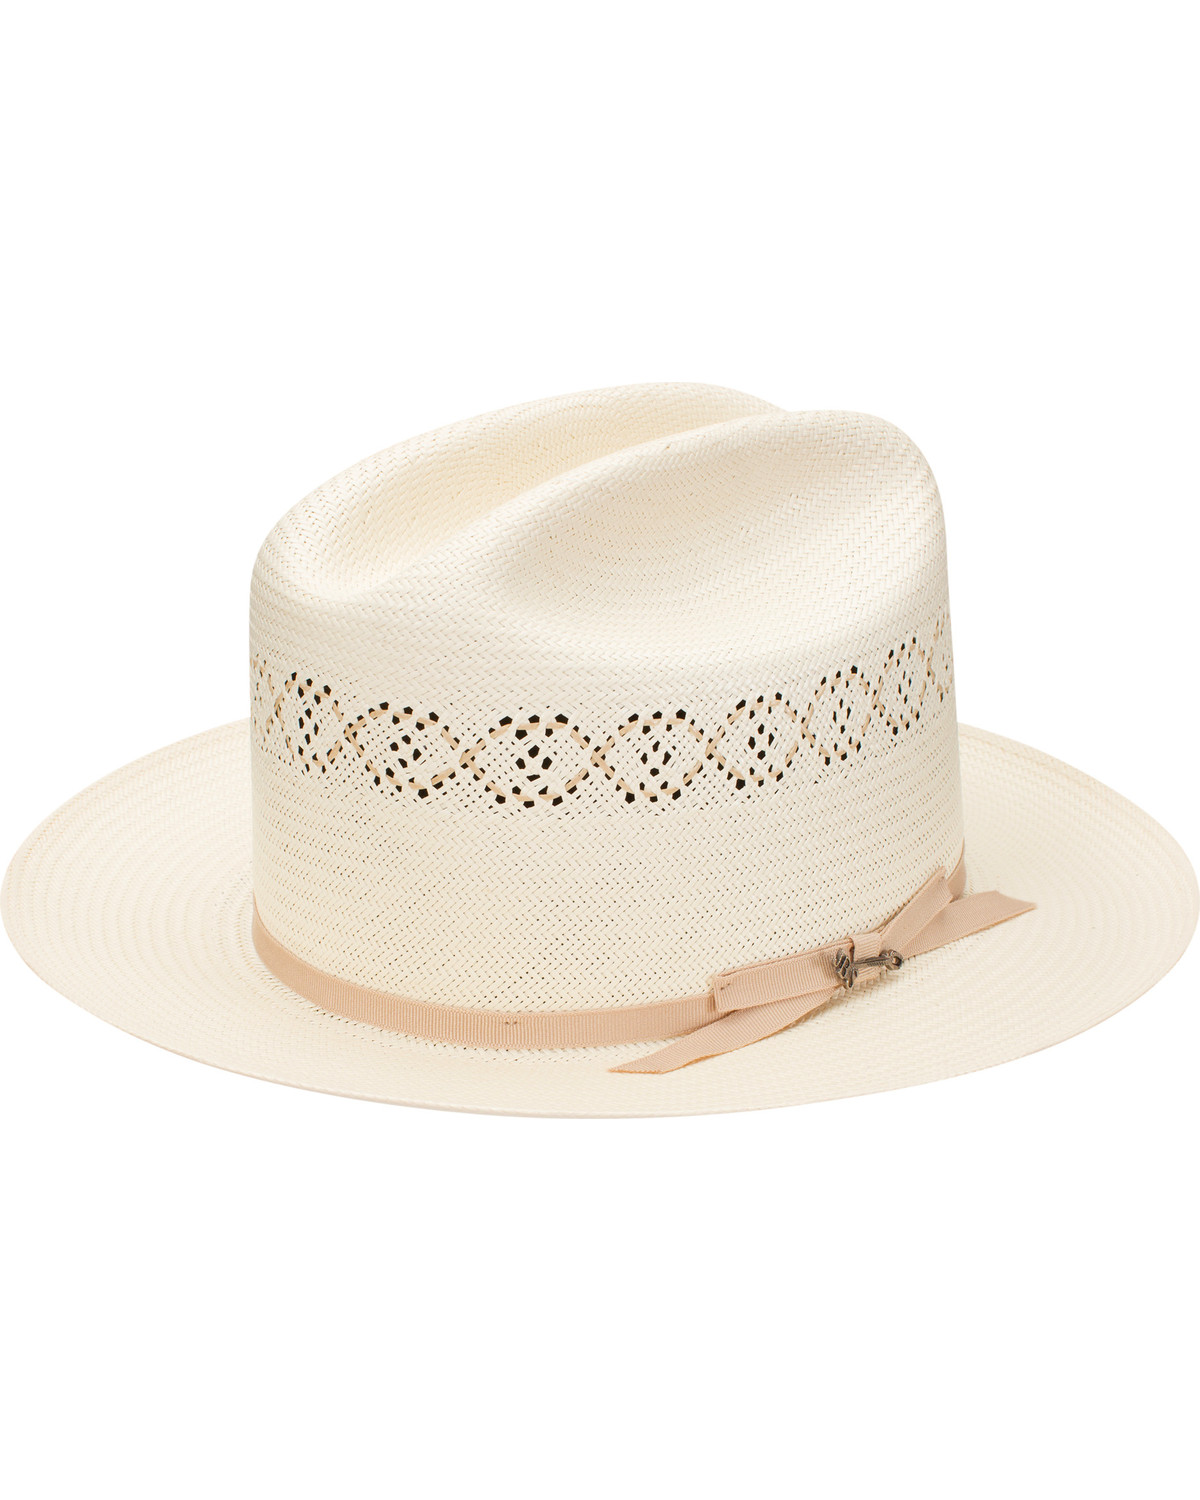 51ccef1672 Stetson Men s Natural Open Road 1 Straw Hat